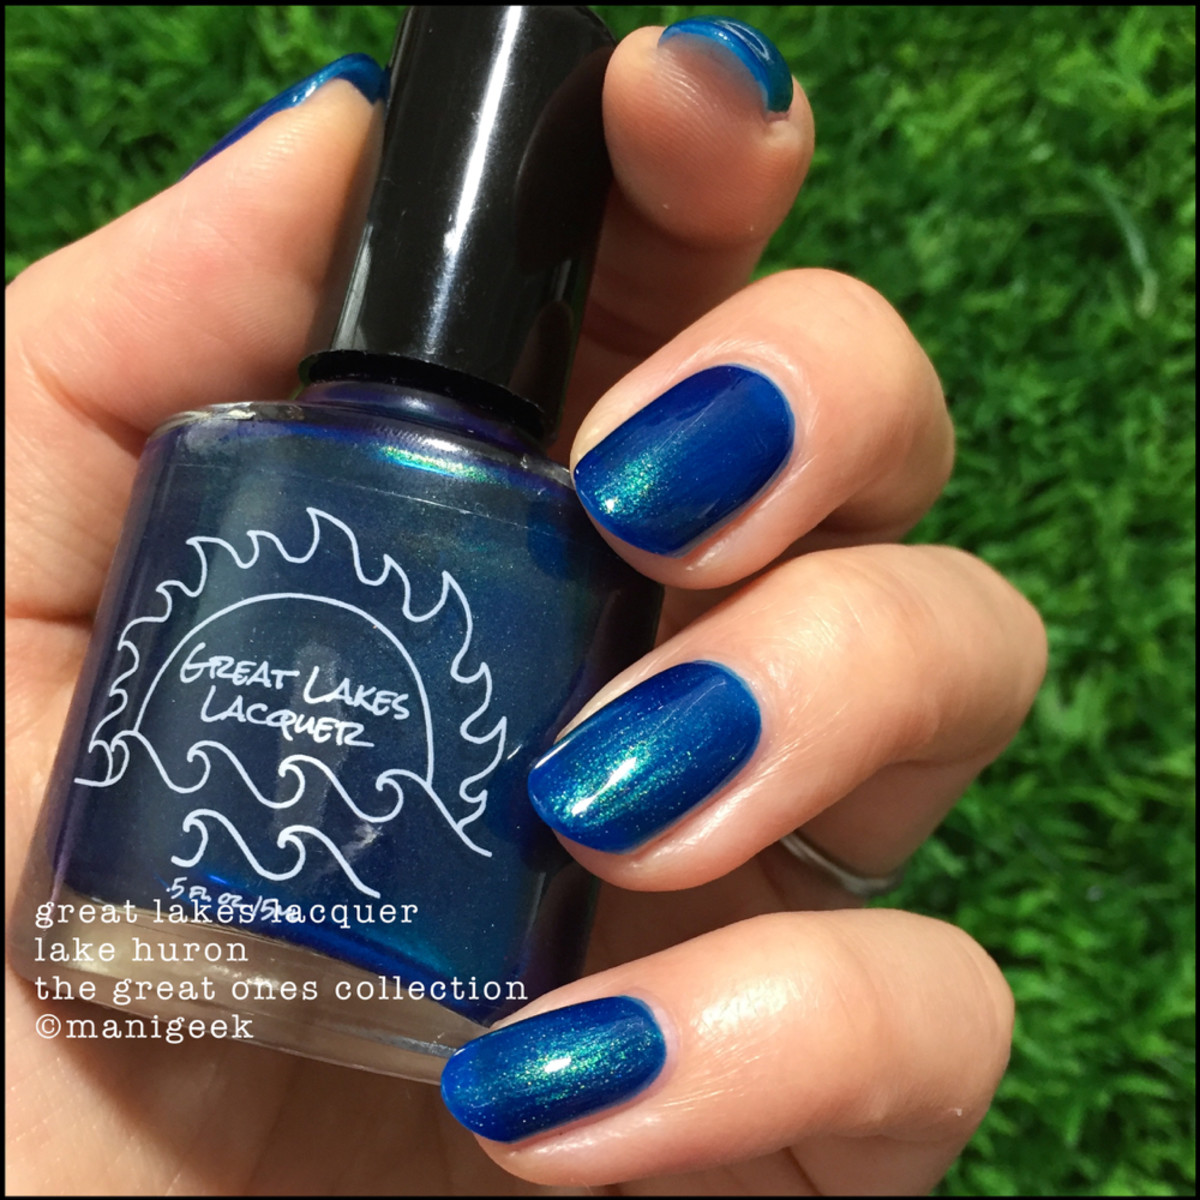 Great Lakes Lacquer Lake Huron_Indie Expo Canada 2017 3